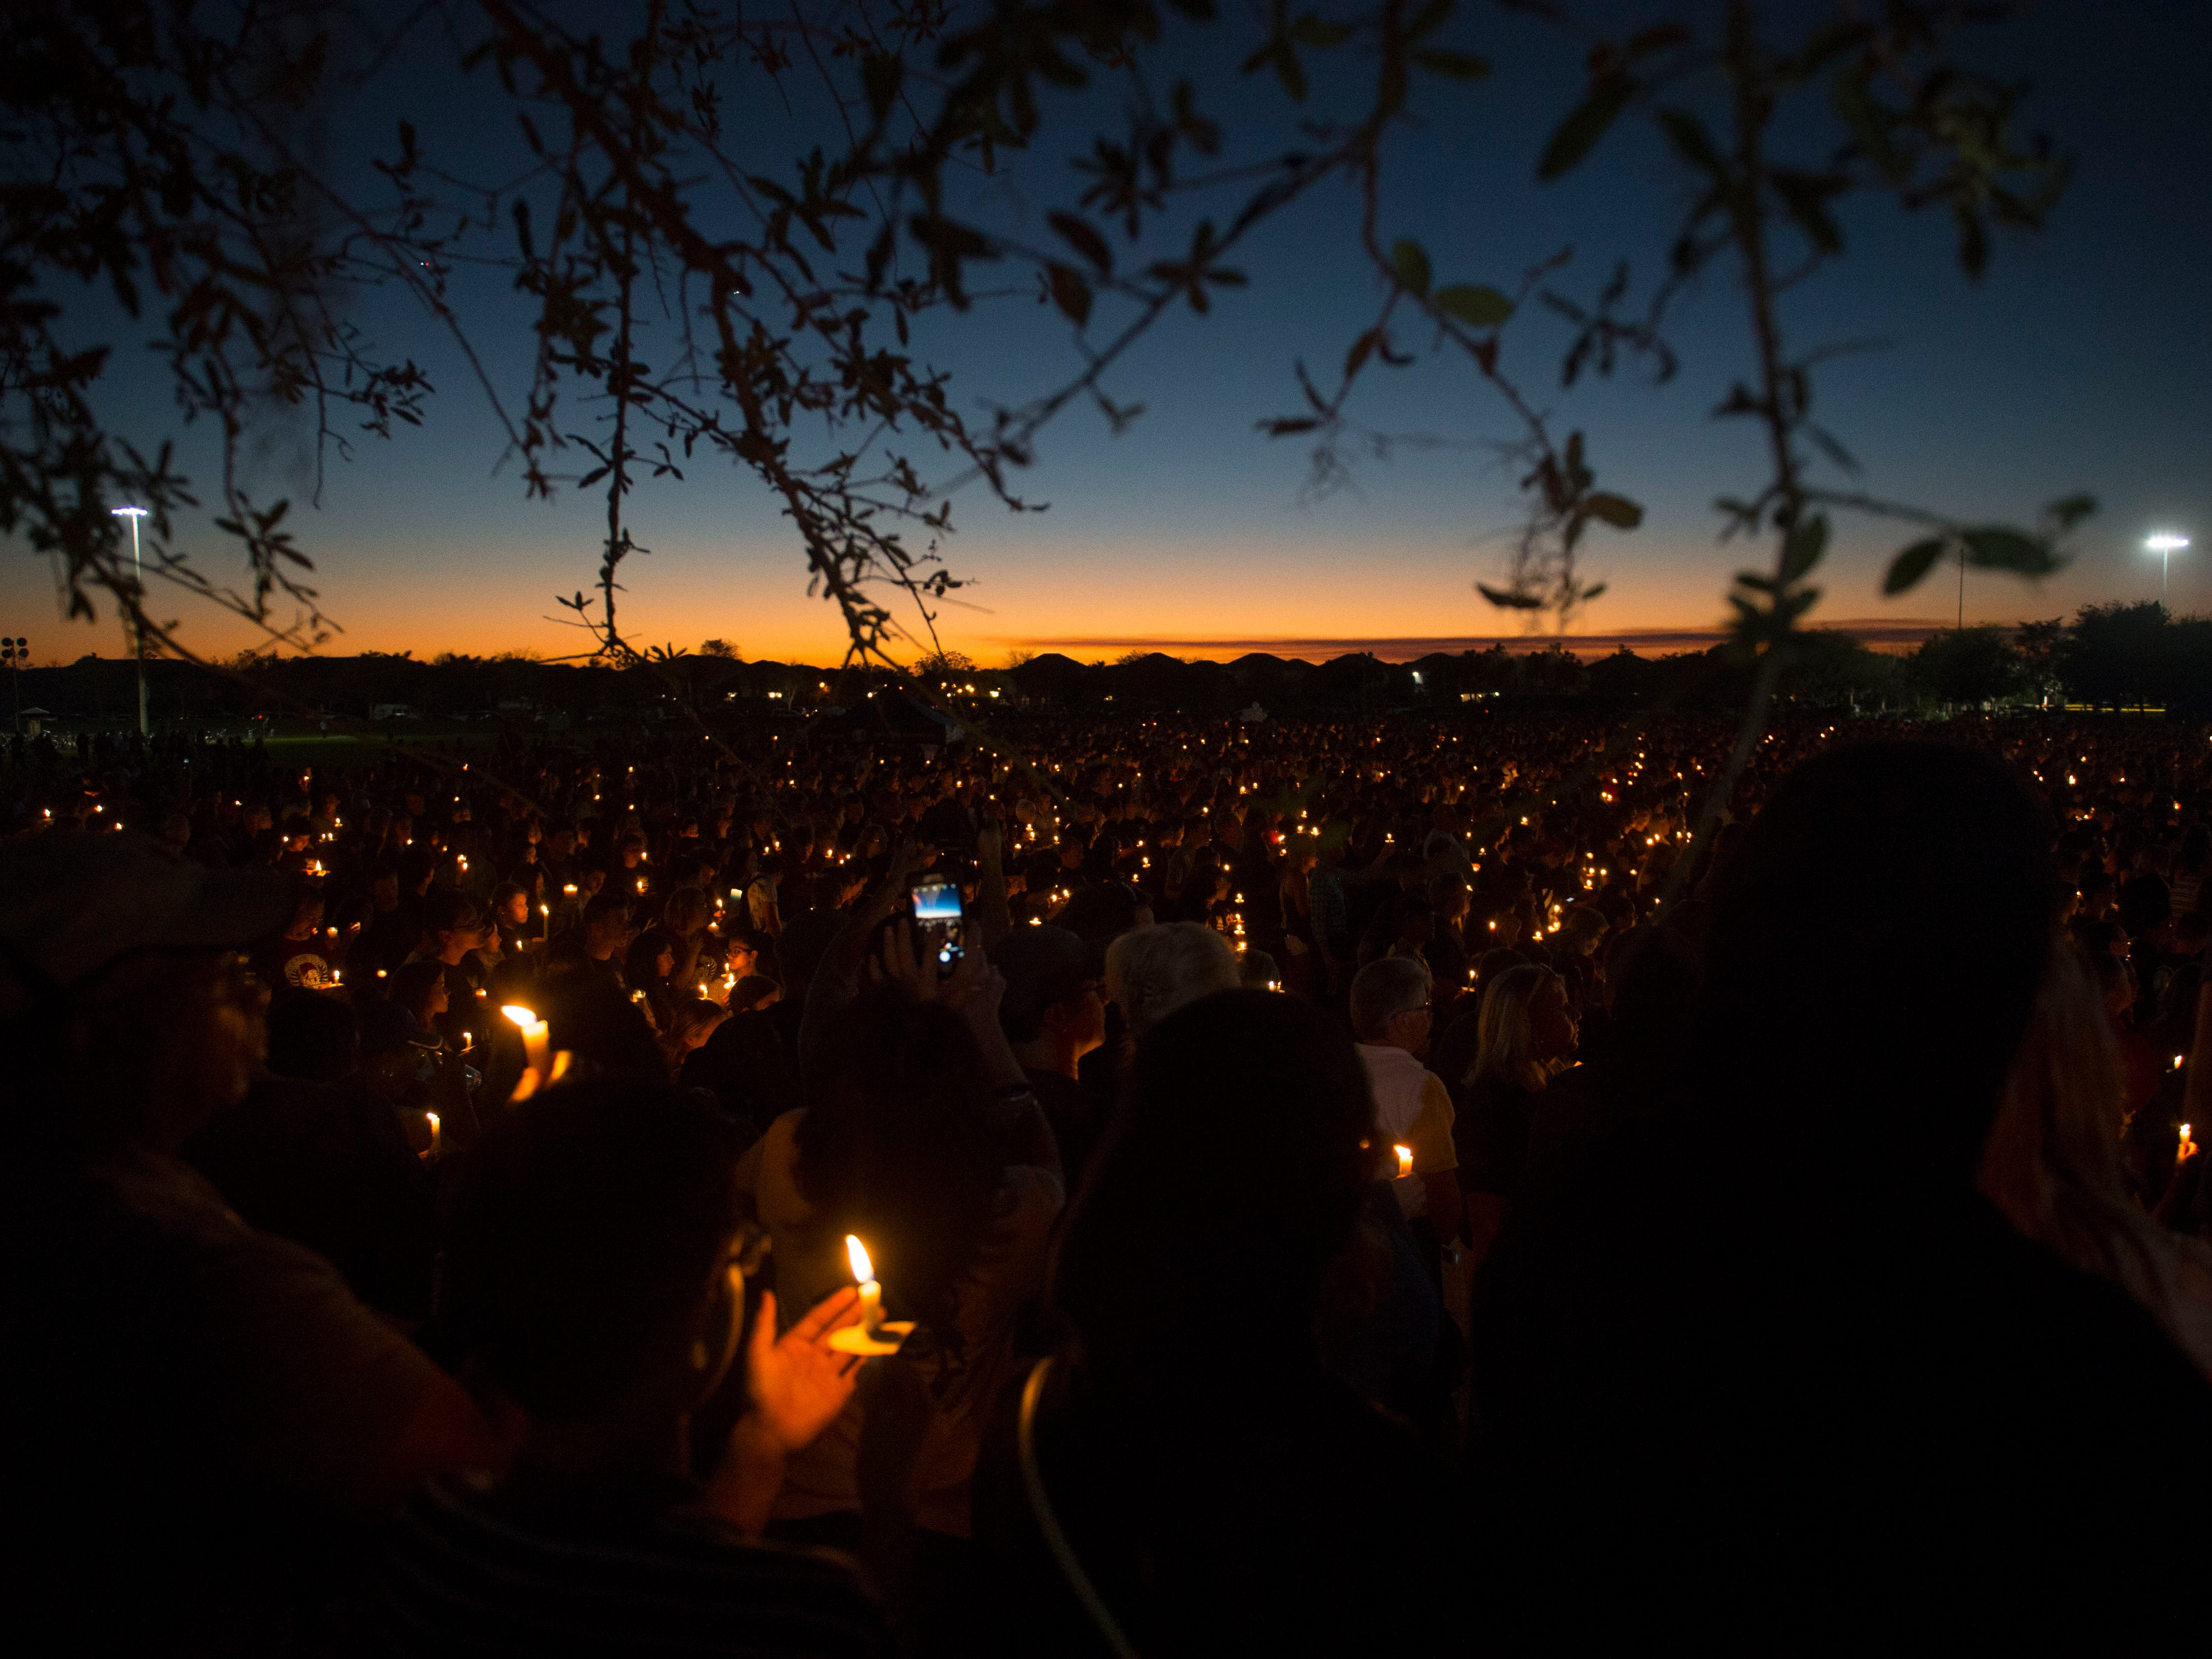 At least 8,000 people gathered Feb. 15, 2018 at Pine Trails Park Amphitheater in Parkland for a candlelight vigil to honor the 17 students and faculty lost in the Valentine's Day shooting at Marjory Stoneman Douglas High School.